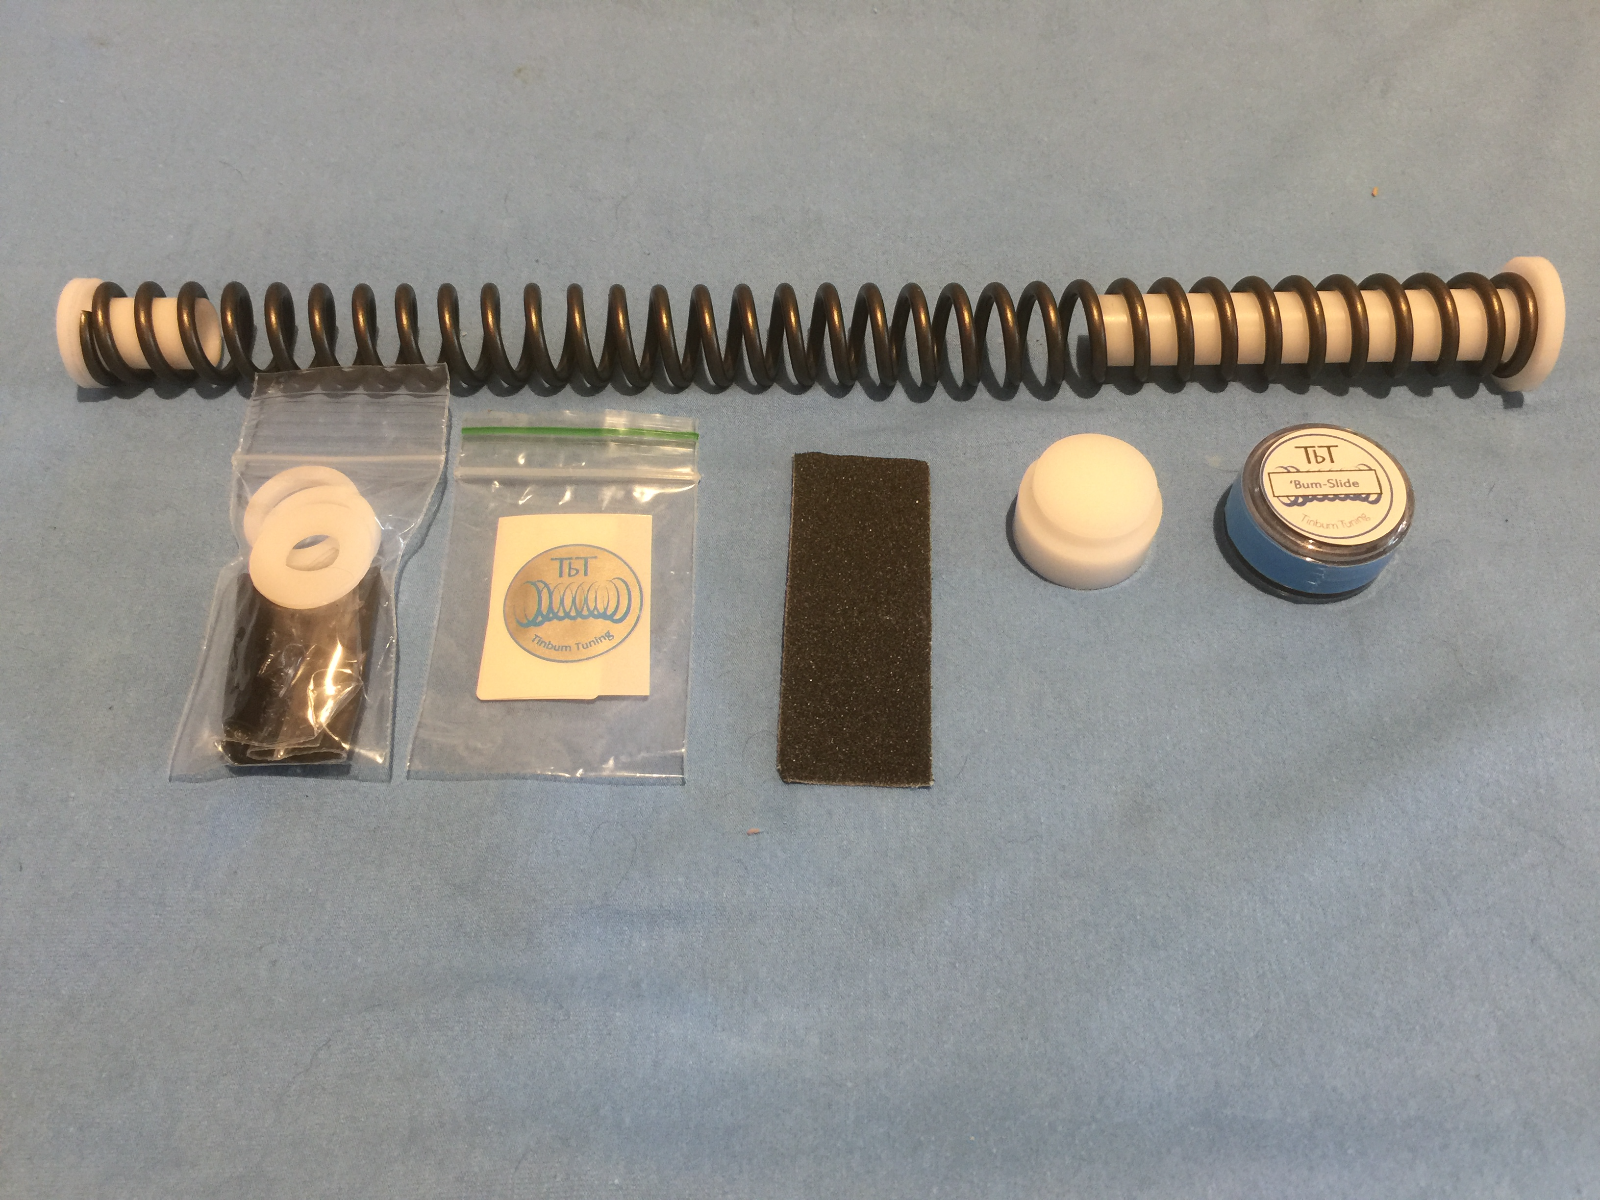 TbT Guide Sets and Spring Kits to fit Weihrauch HW77 HW77K HW97 HW97K